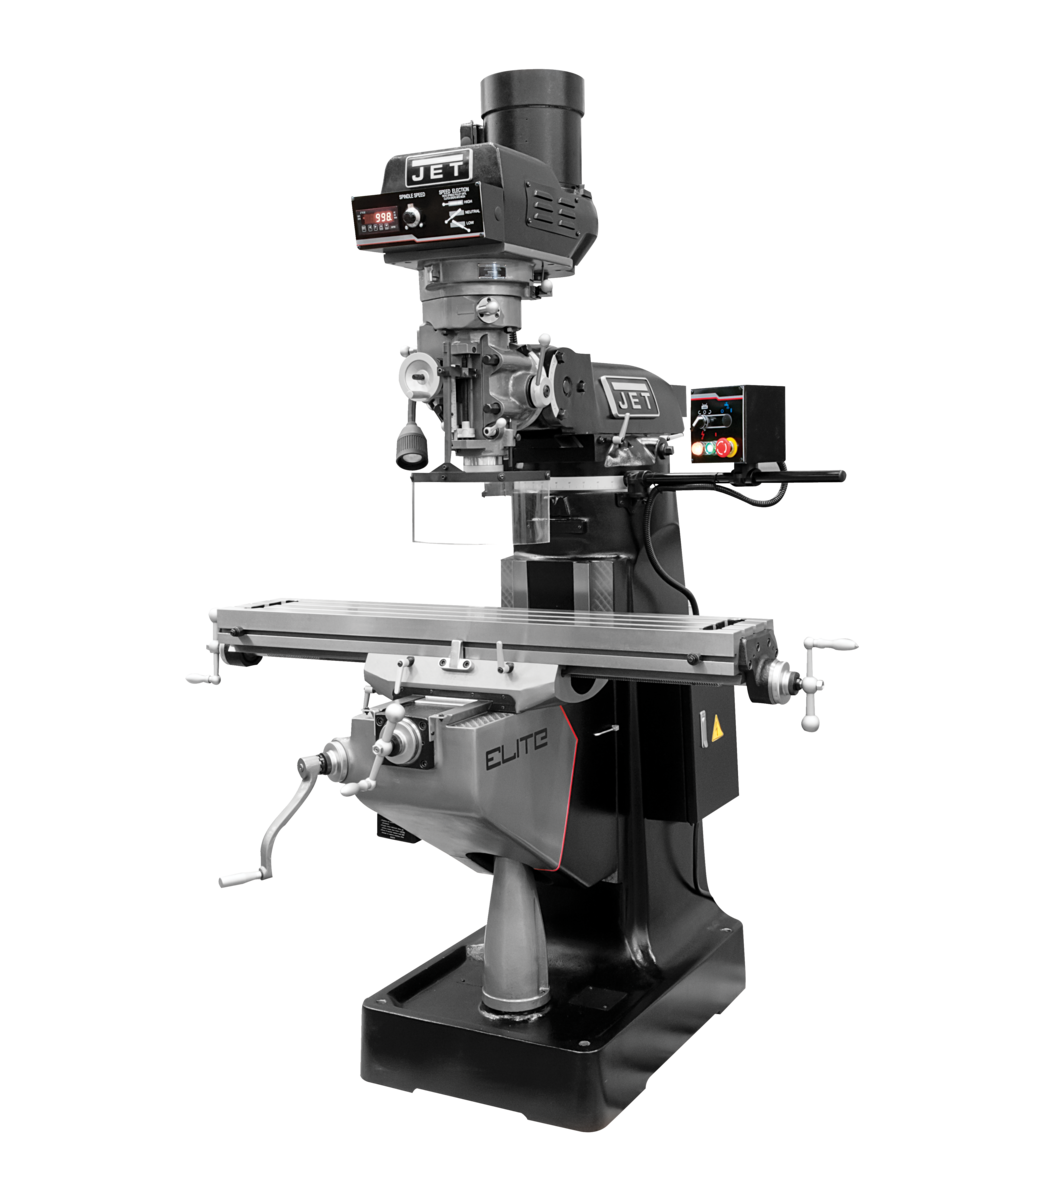 EVS-949 Mill with 3-Axis ACU-RITE 303 (Knee) DRO